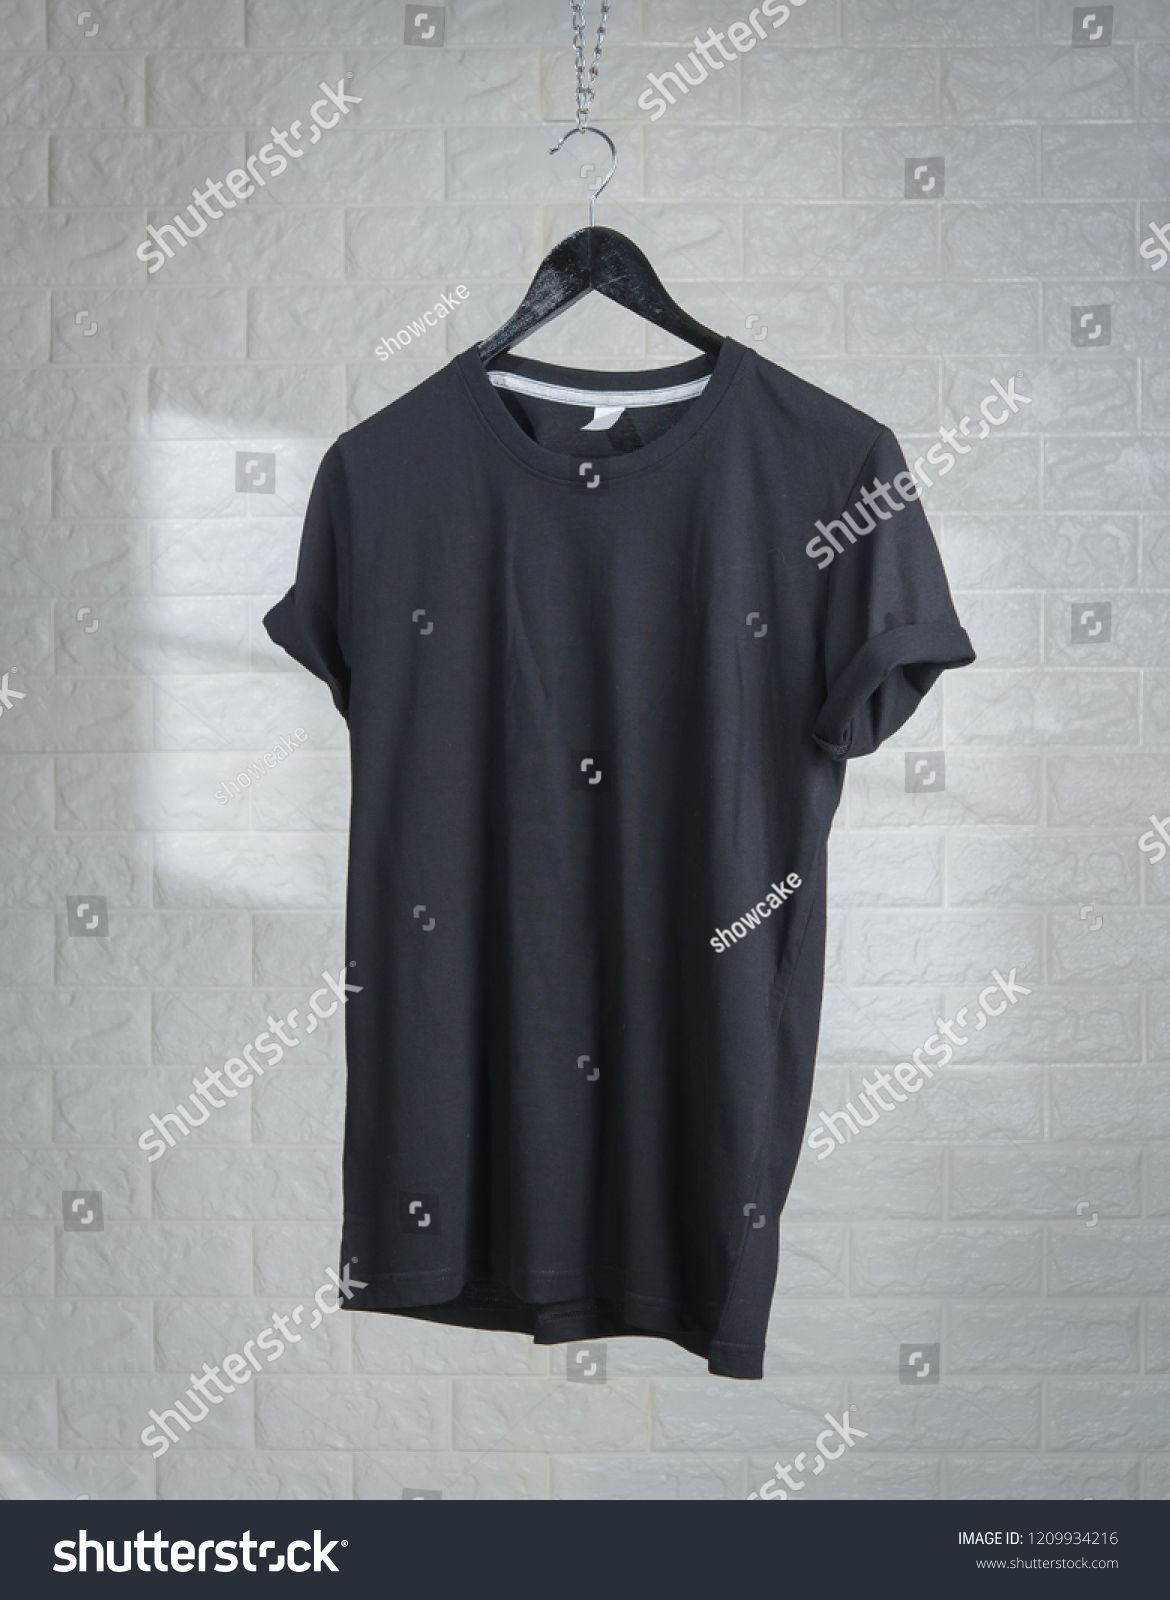 Download Blank Black T Shirts Mock Up Hanging Against White Brick Wall Shadows From A Window Frame Mock Hanging Shirts Blank Black Tshirt Black Fashion